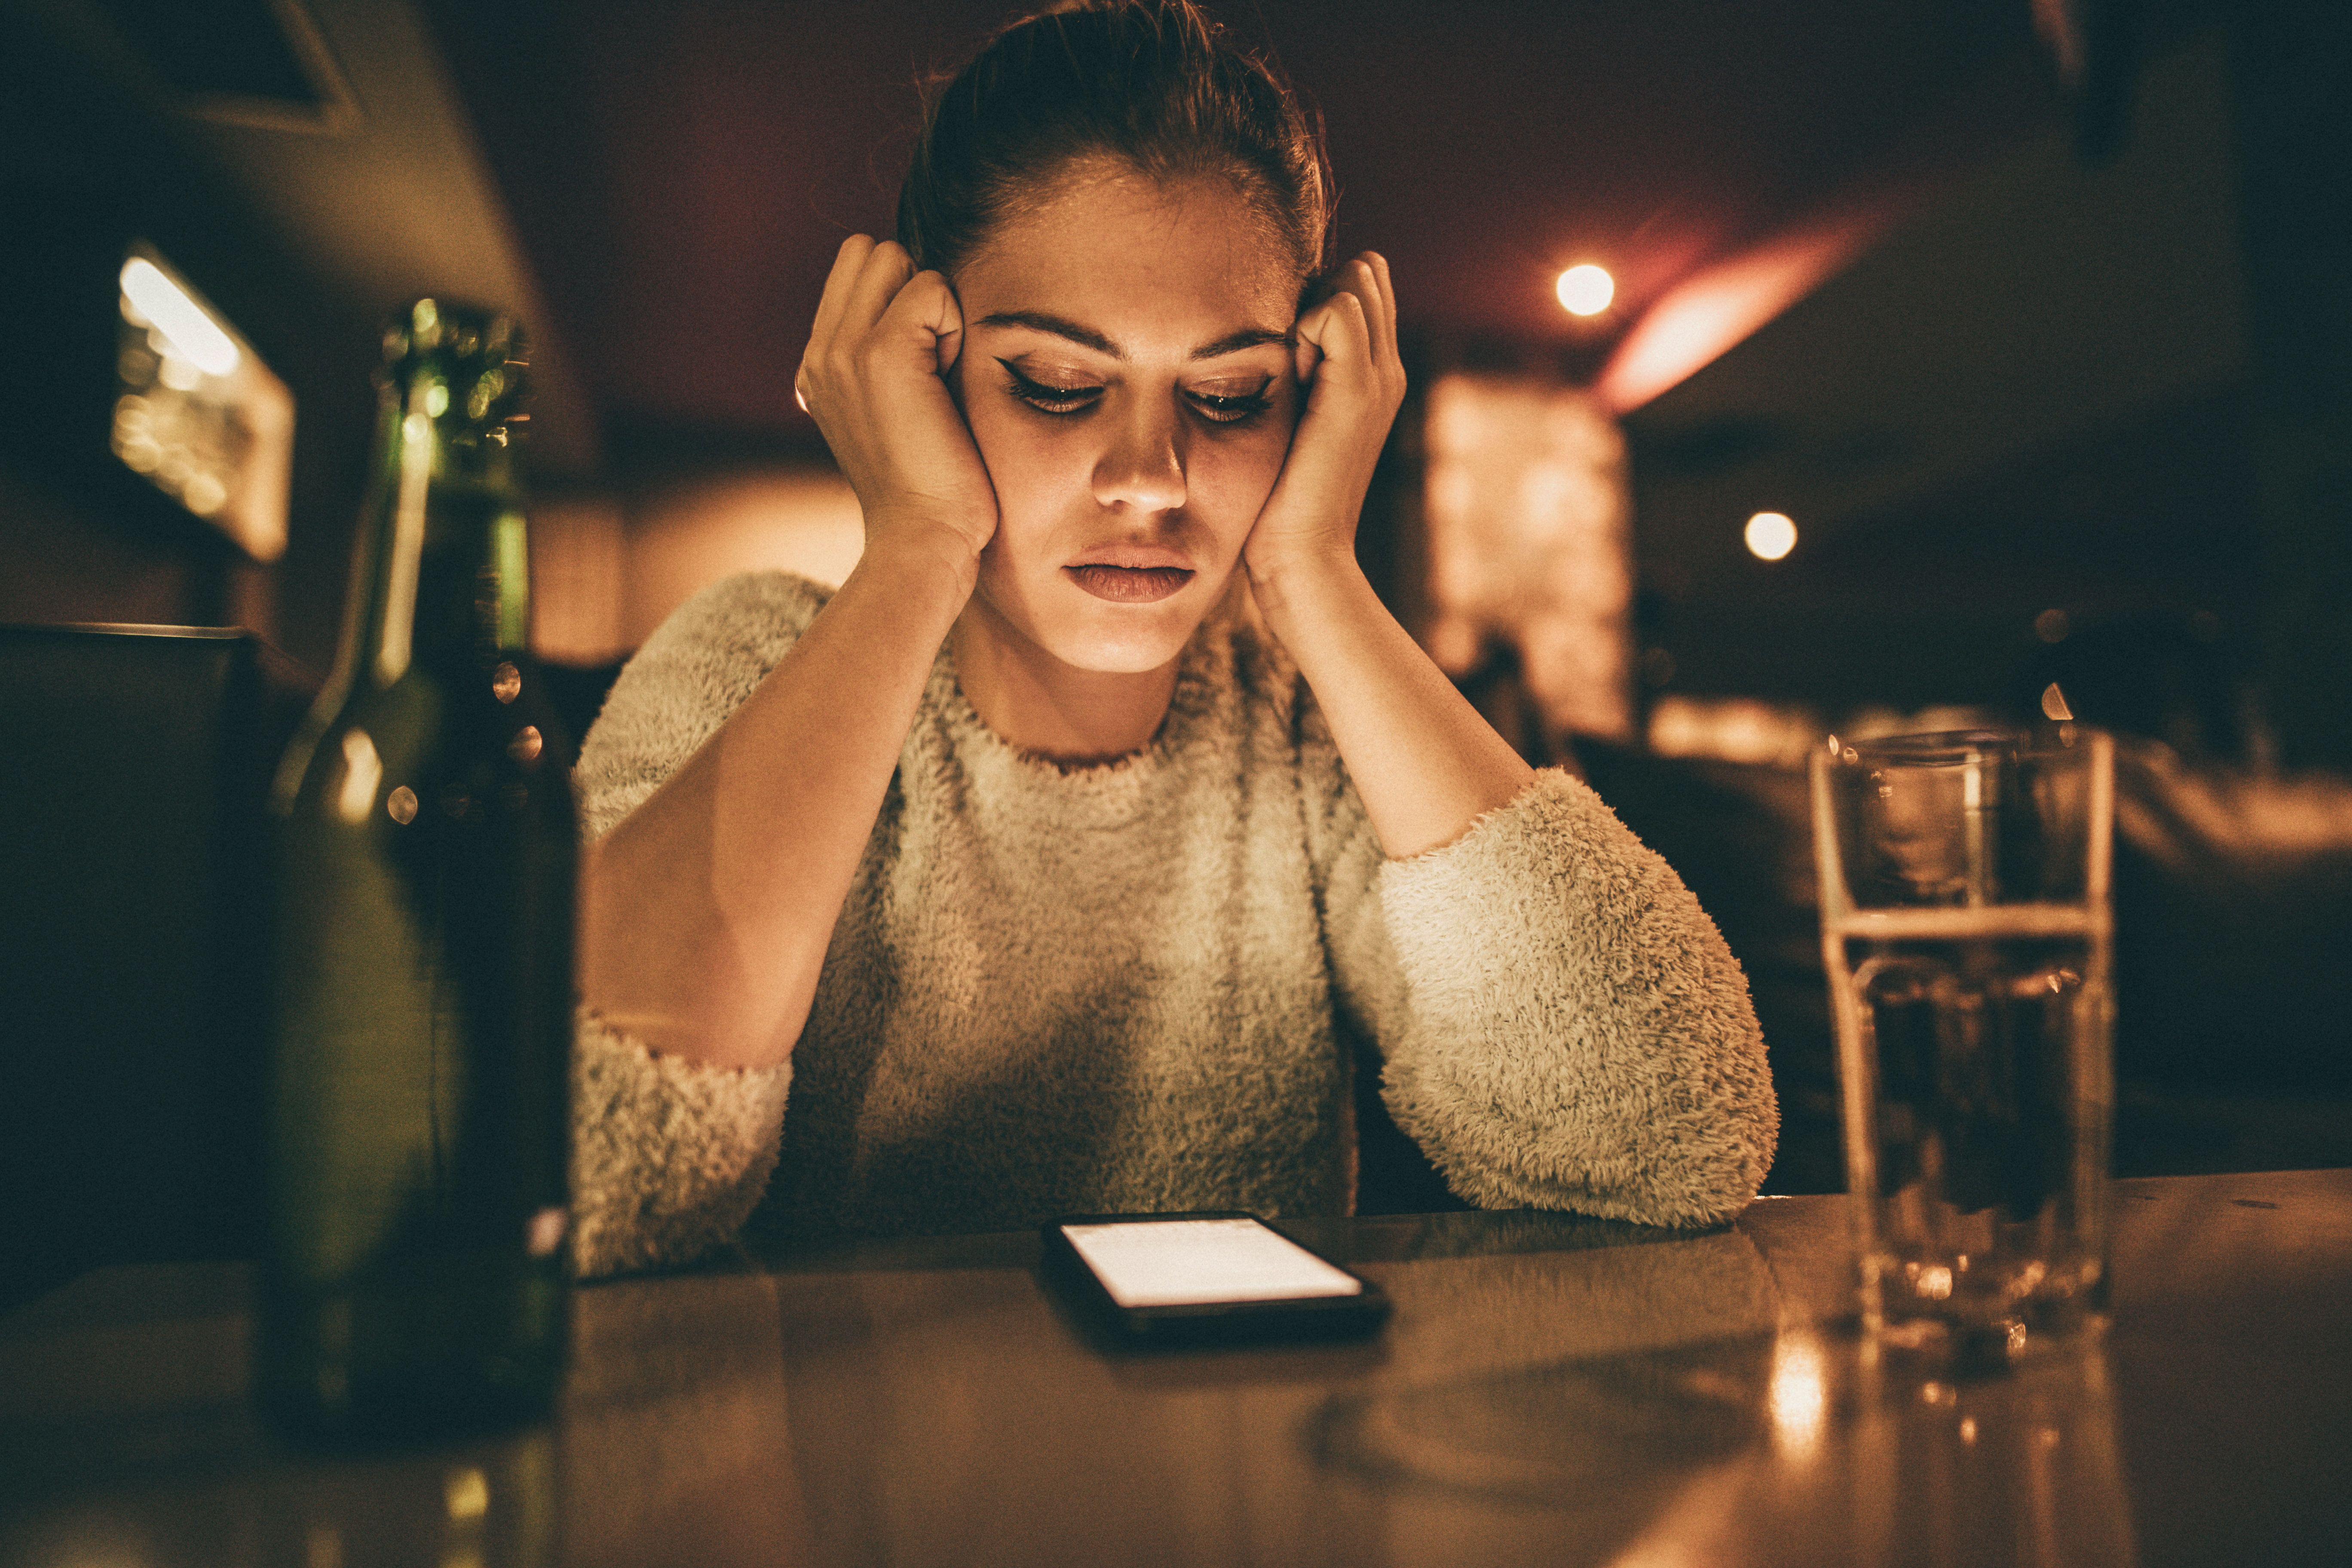 Depressed woman sitting in a bar and looking at her cell phone while waiting for a call from her boyfriend.